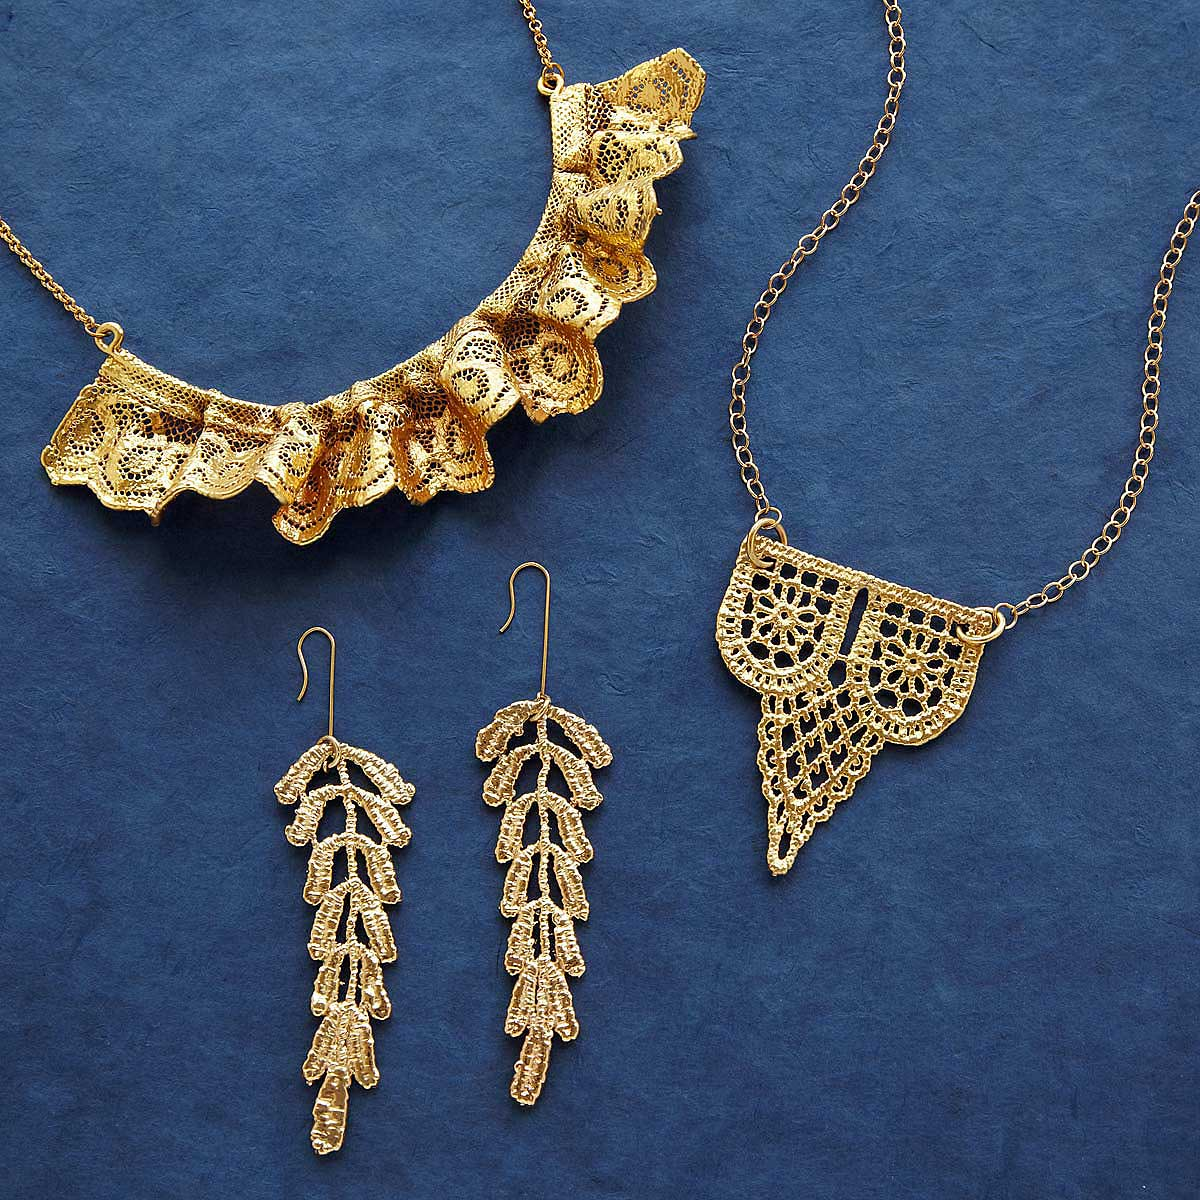 Ruffled Gold Dipped Lace Statement Necklace gilded lace jewelry